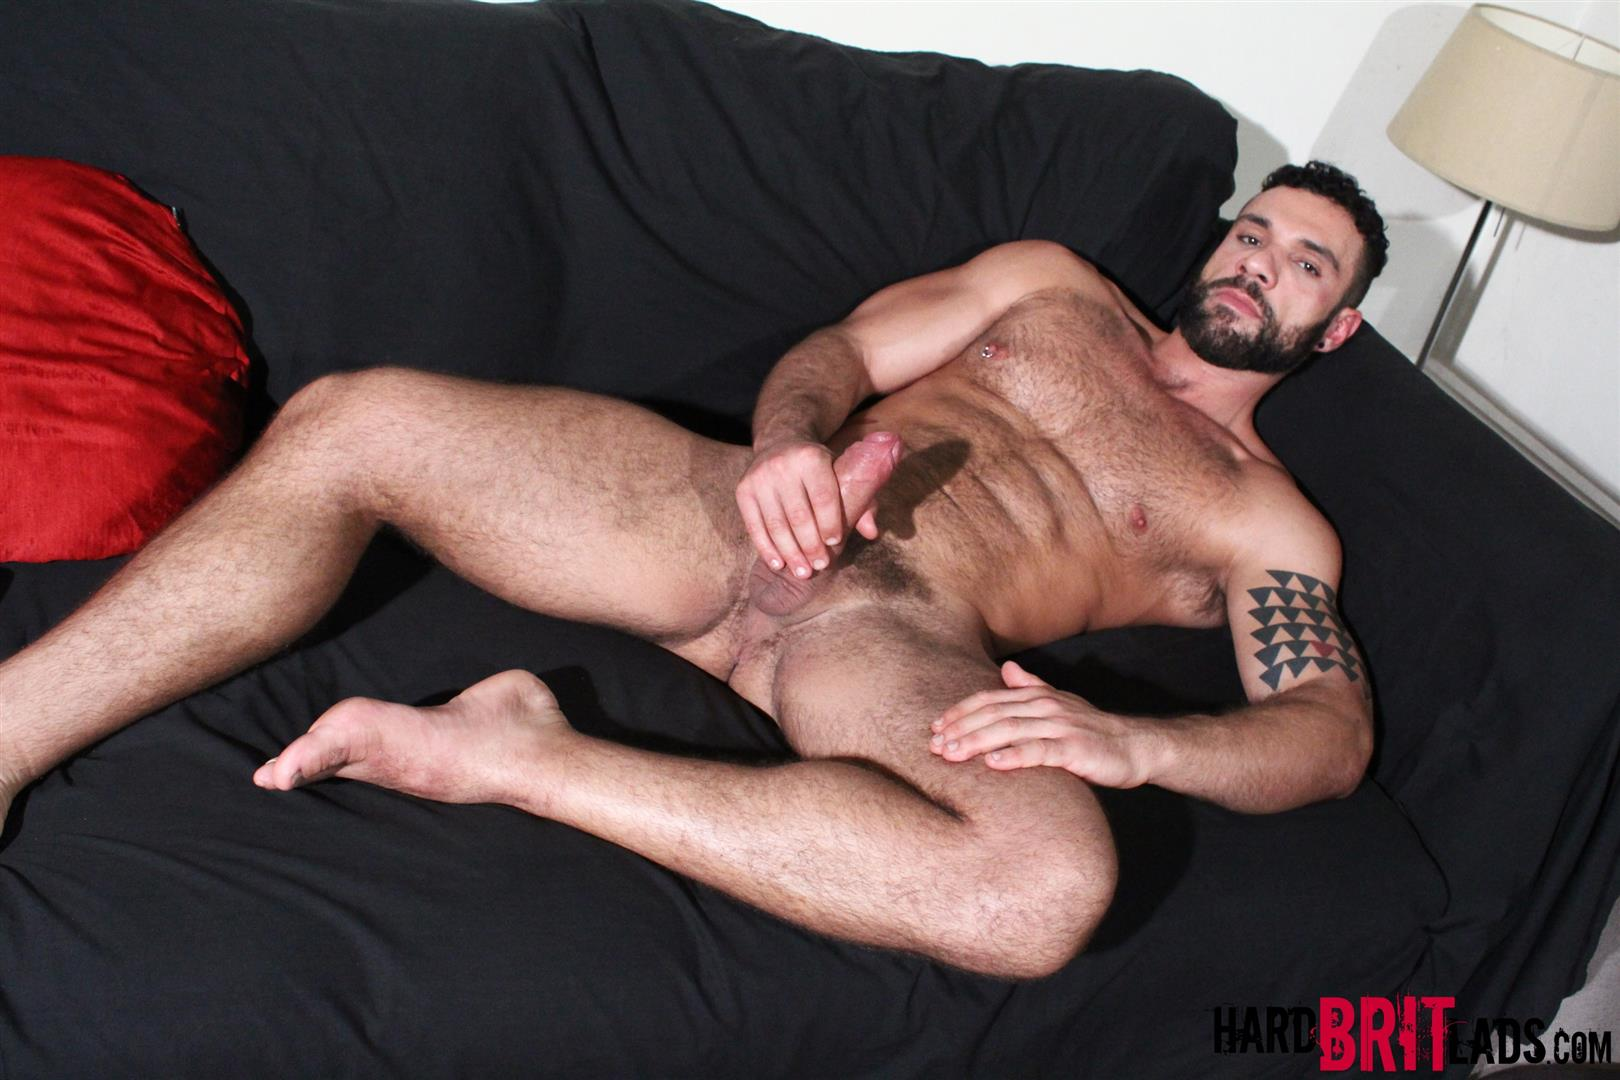 Hard Brit Lads Letterio Amadeo Hairy Rugby Player With A Big uncut Cock Amateur Gay Porn 10 Beefy Hairy Muscle Rugby Player Playing With His Big Uncut Cock